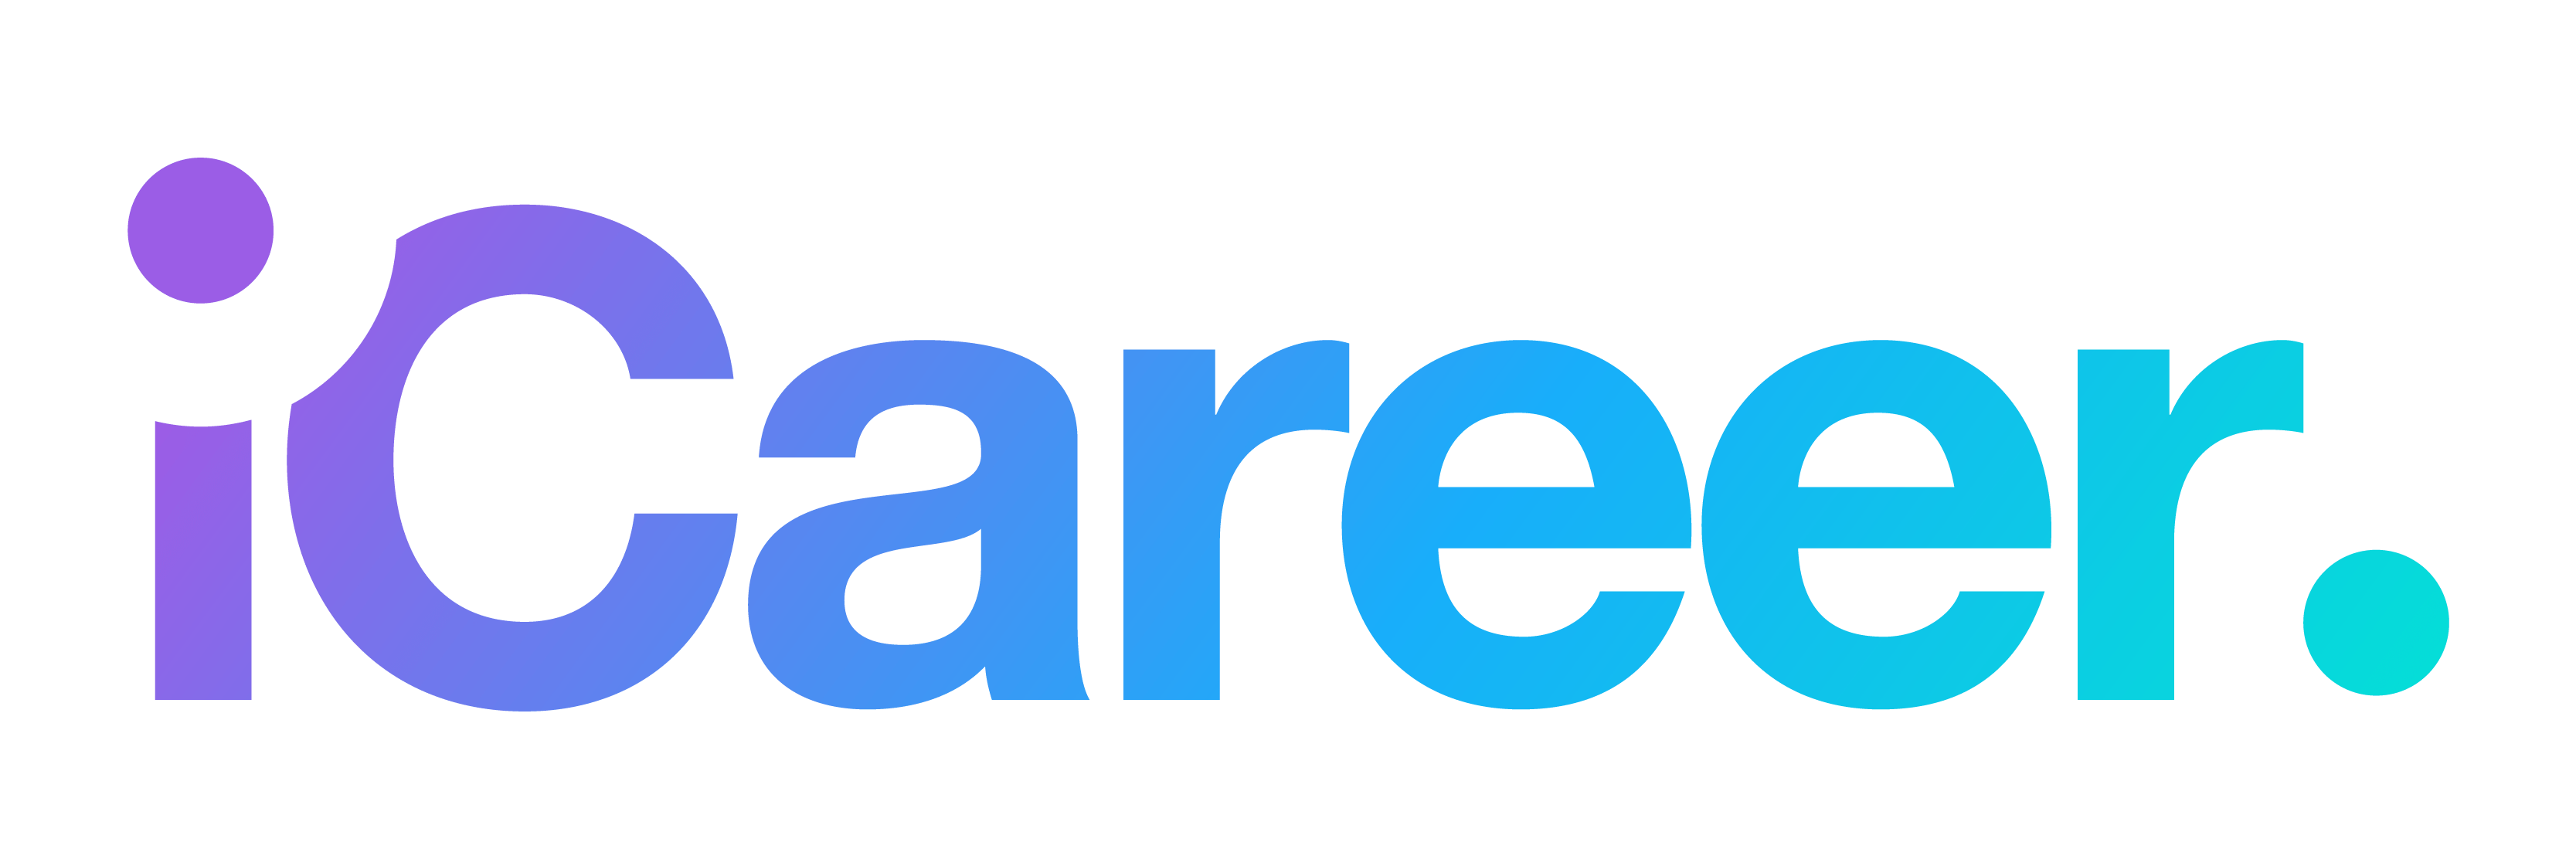 iCareer_colour-Logo